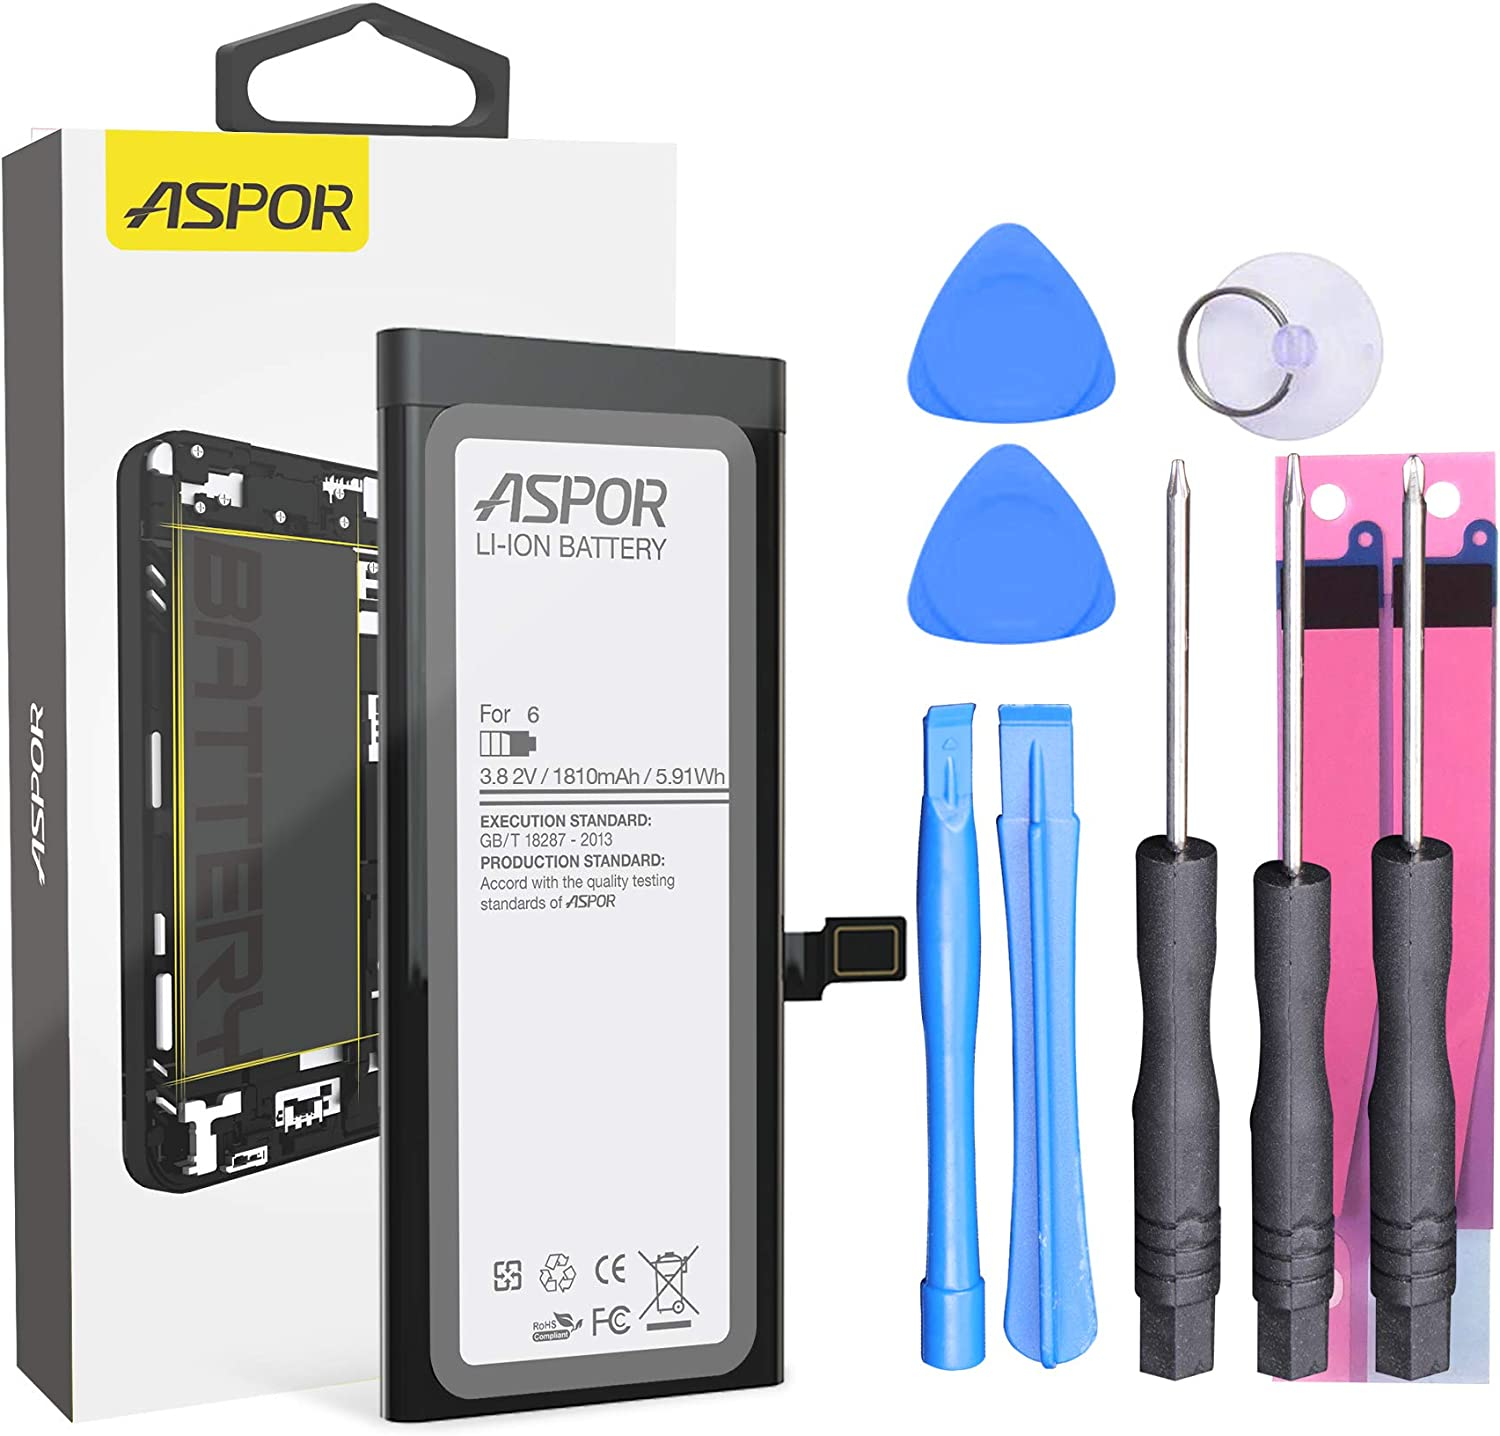 ASPOR Battery for iPhone 6, 1810 mAh Battery Replacement Compatible with iPhone 6 with Complete Repair Tool Kits & Adhesive Strips